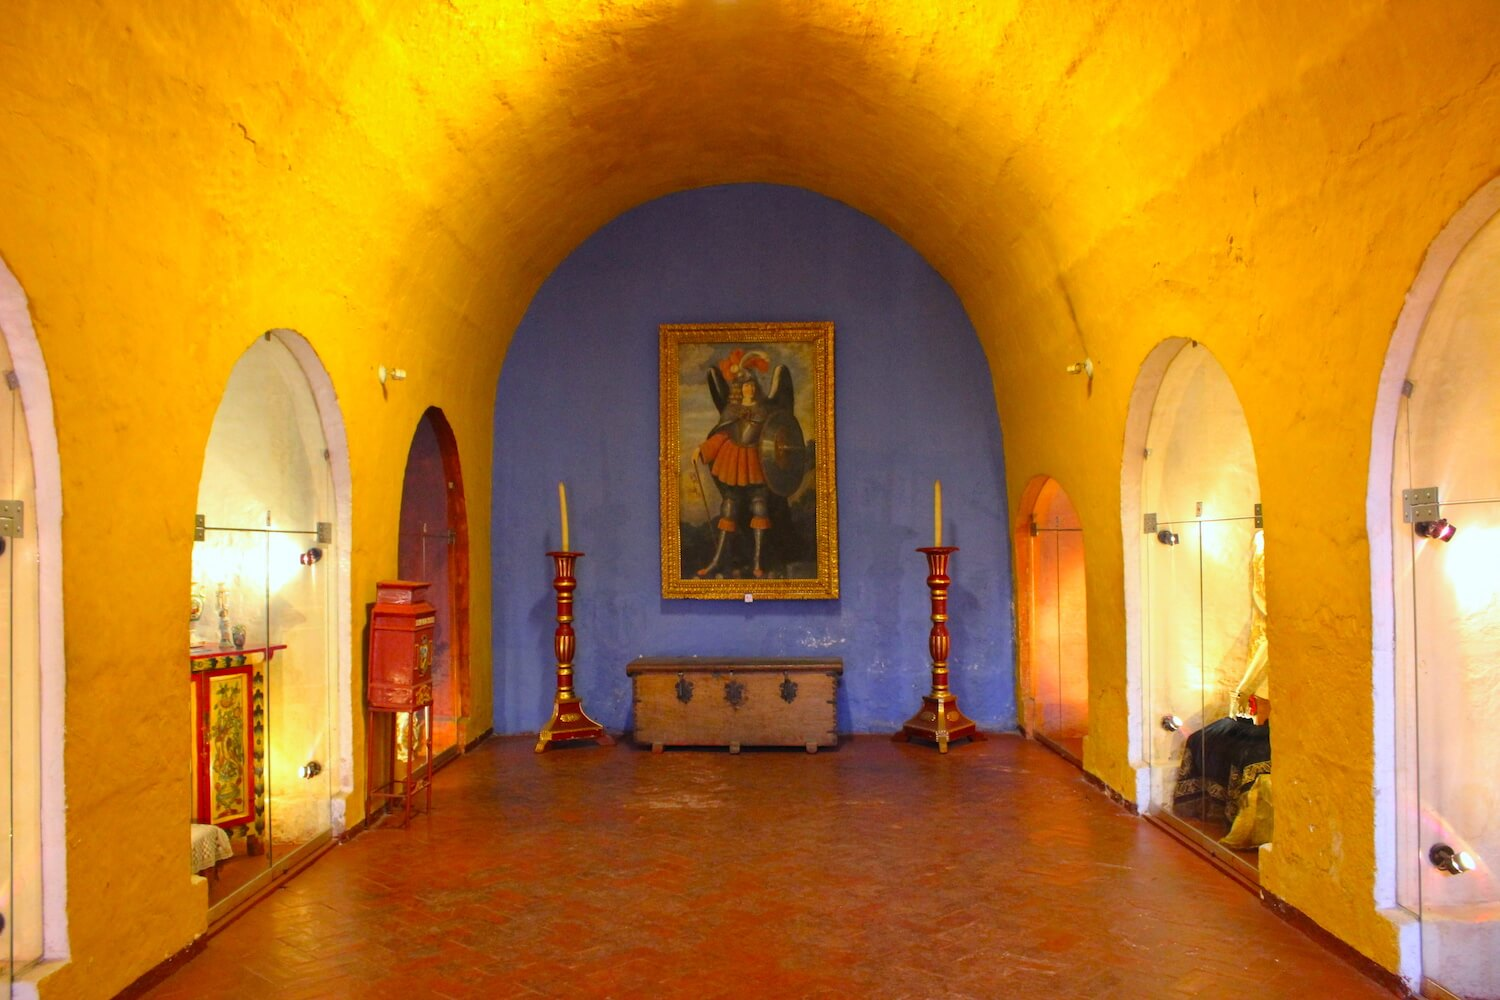 monastery of santa catalina yellow blue room